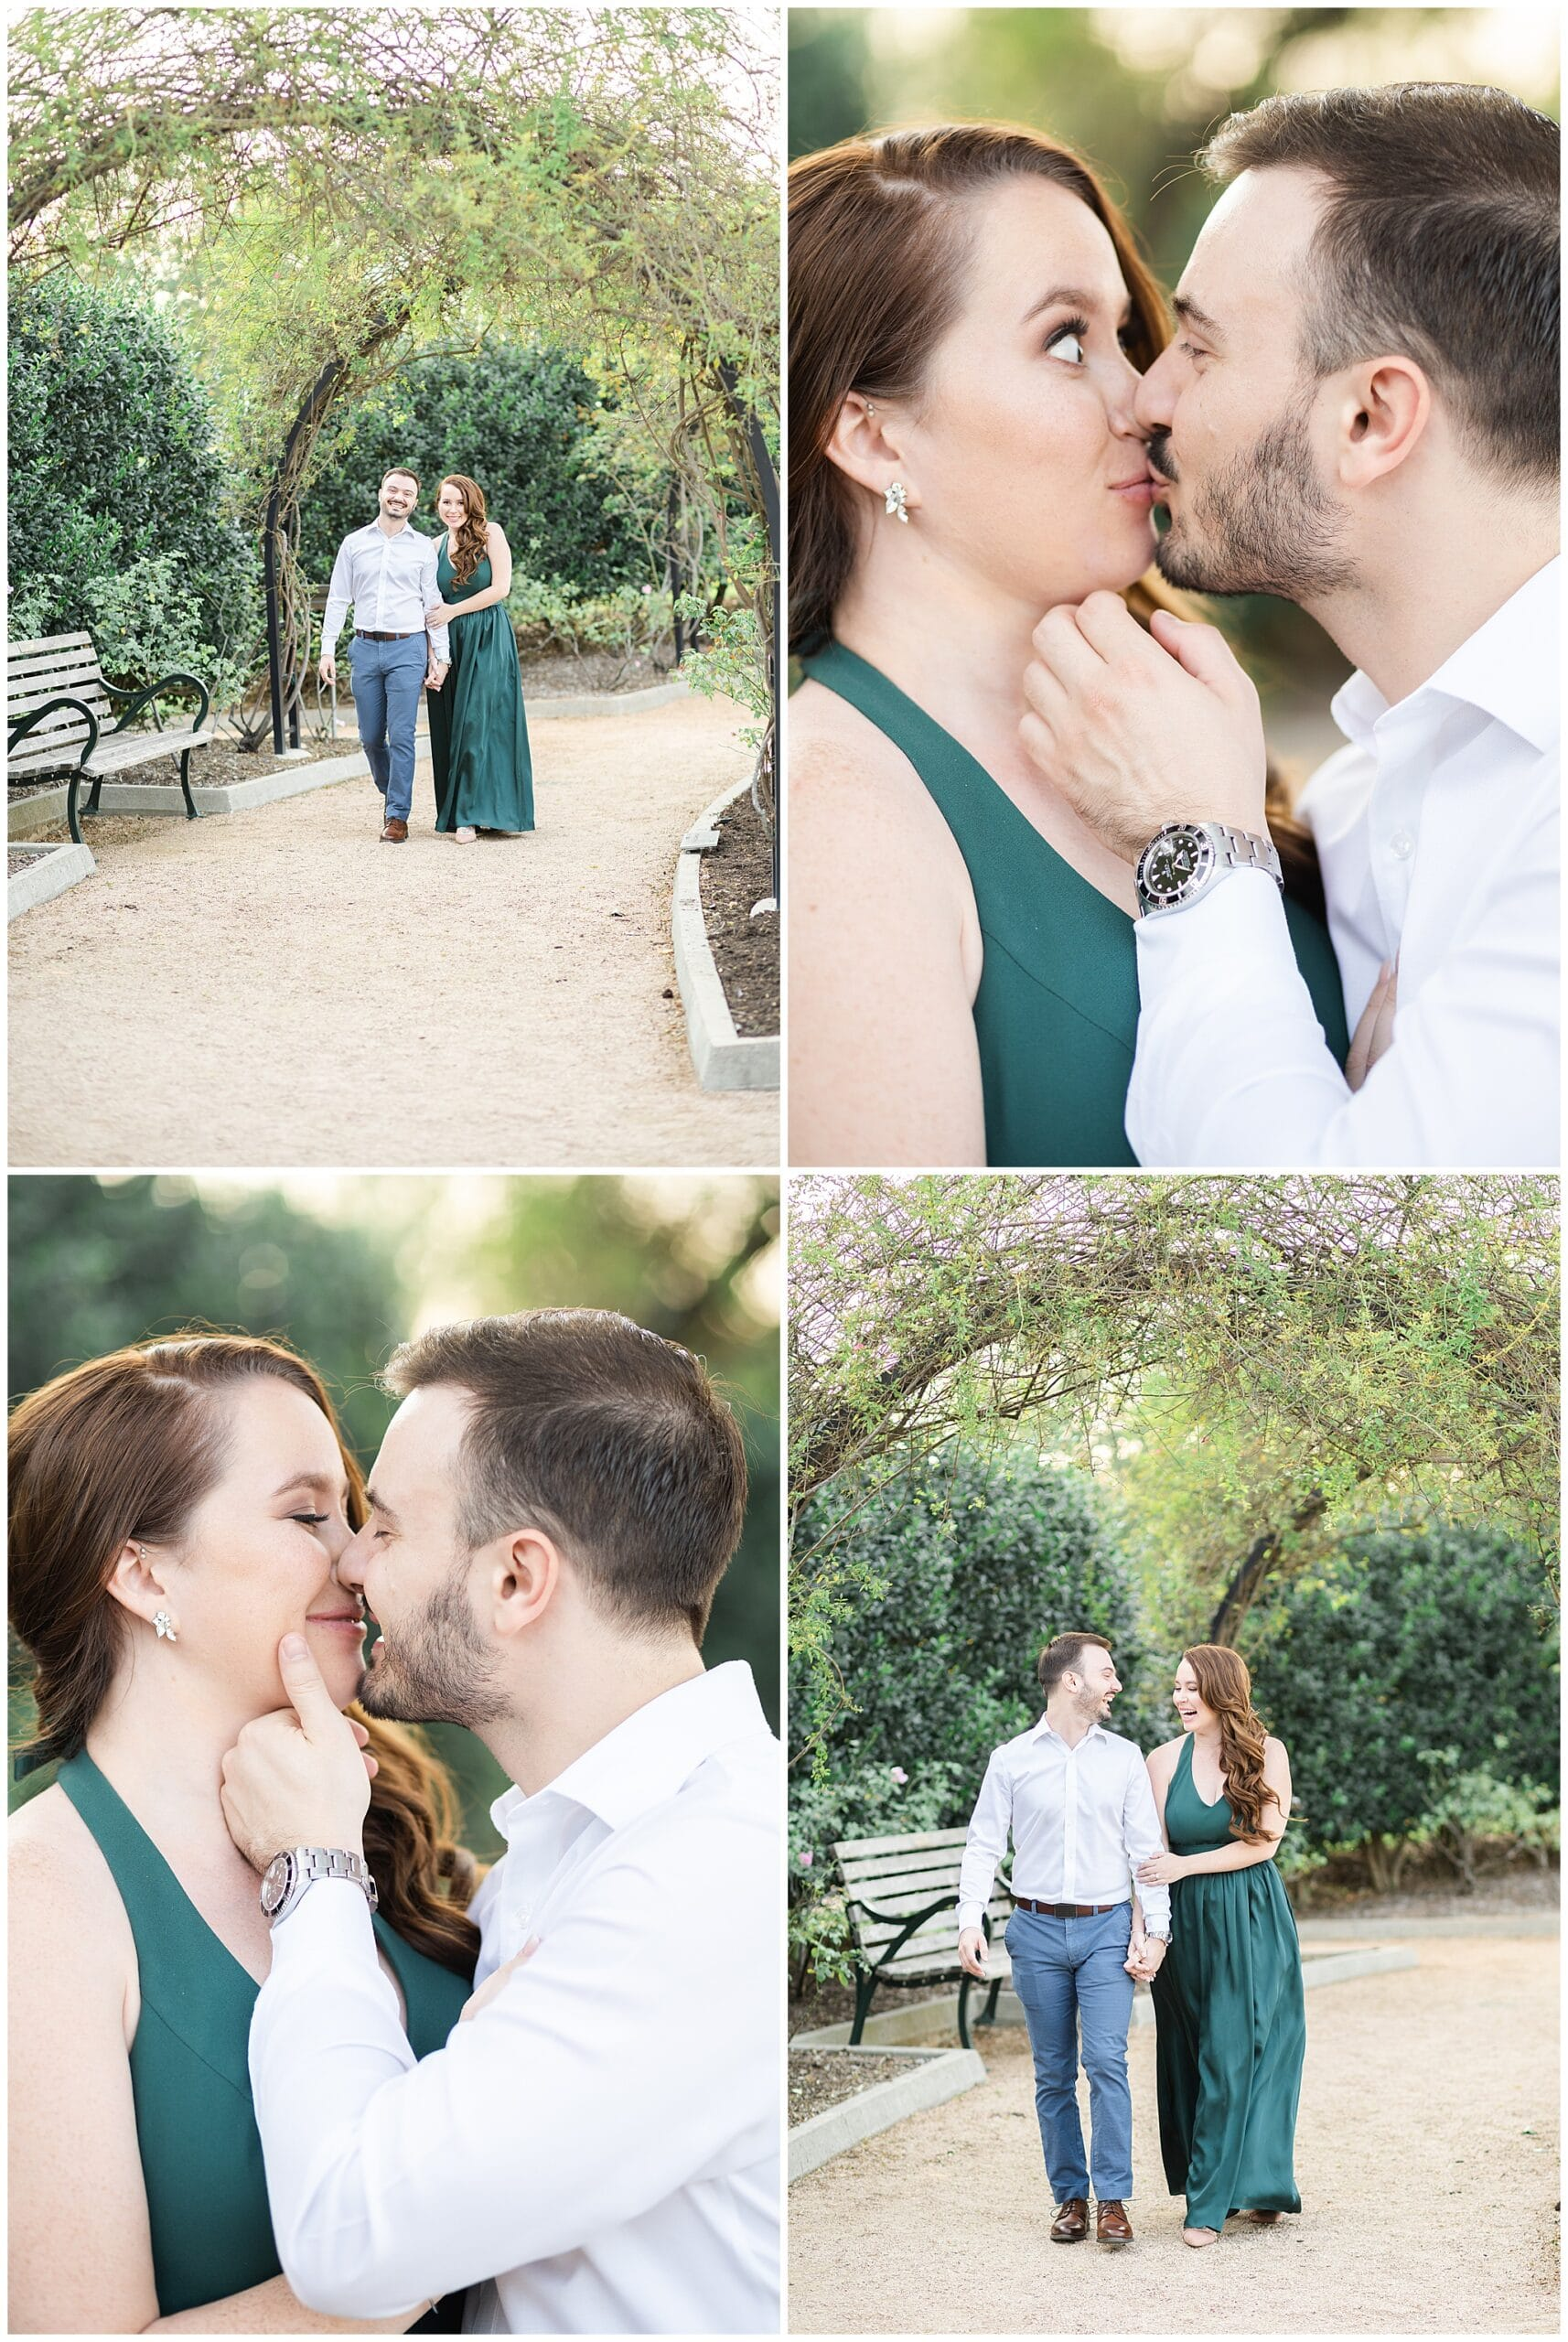 Houston engagement session captured by Swish and Click Photography with a couple that's cuddling